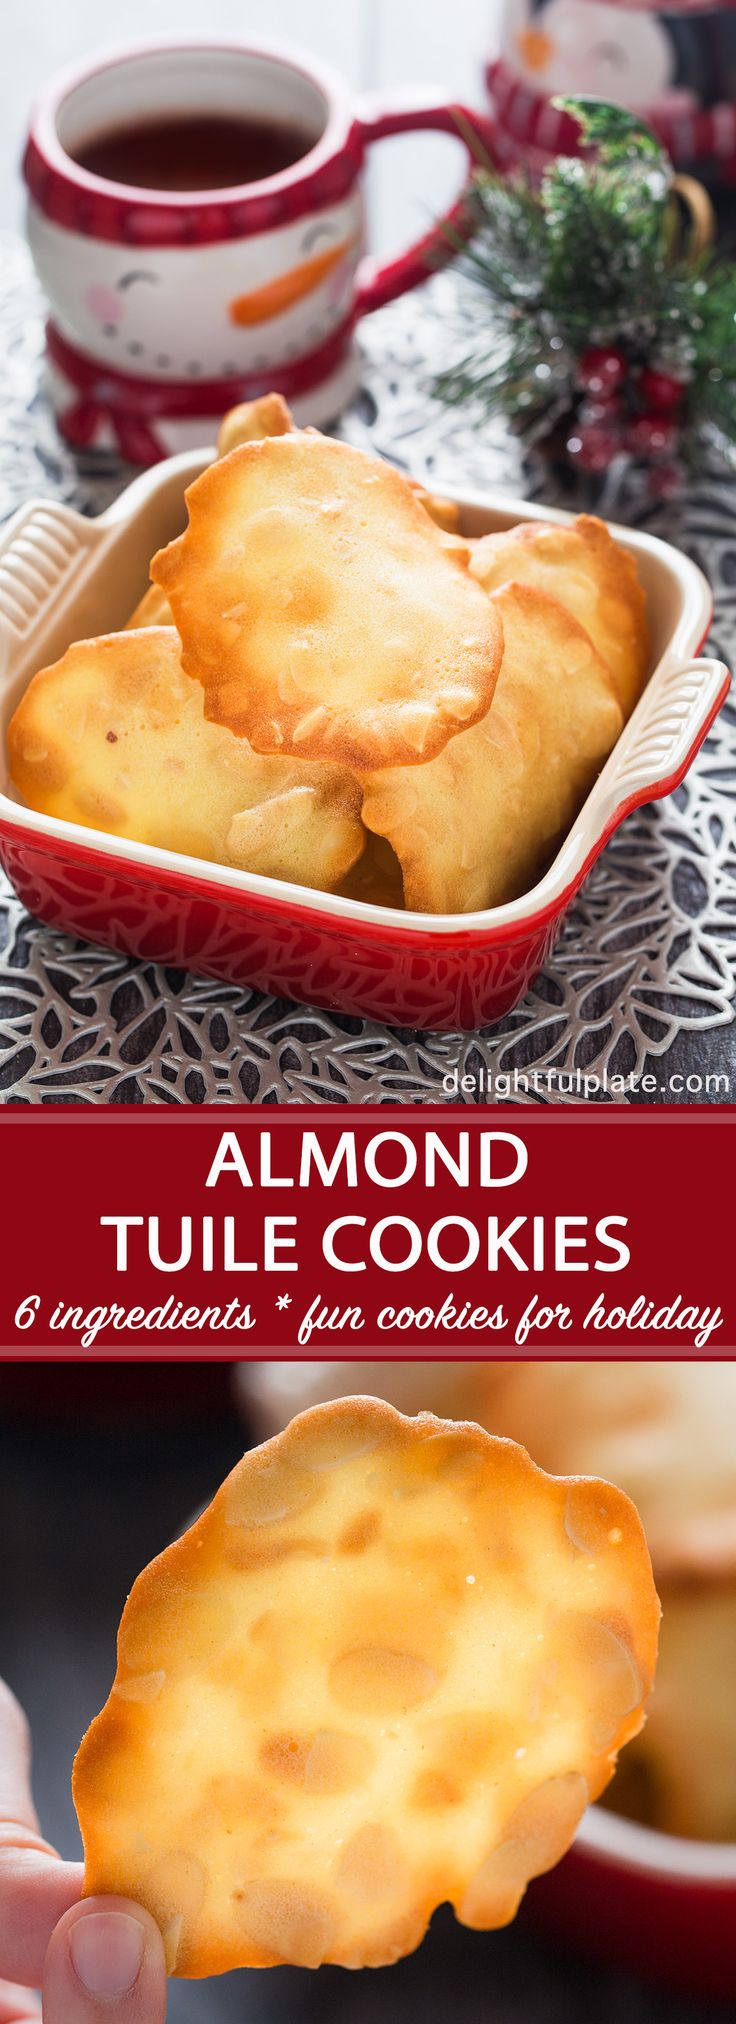 Almond tuile is an elegant French cookie. With just six simple pantry ingredients, you can easily make these crisp, buttery and nutty cookies. They are perfect as everyday cookies as well as cookies for special occasions. #cookie #holiday #baking